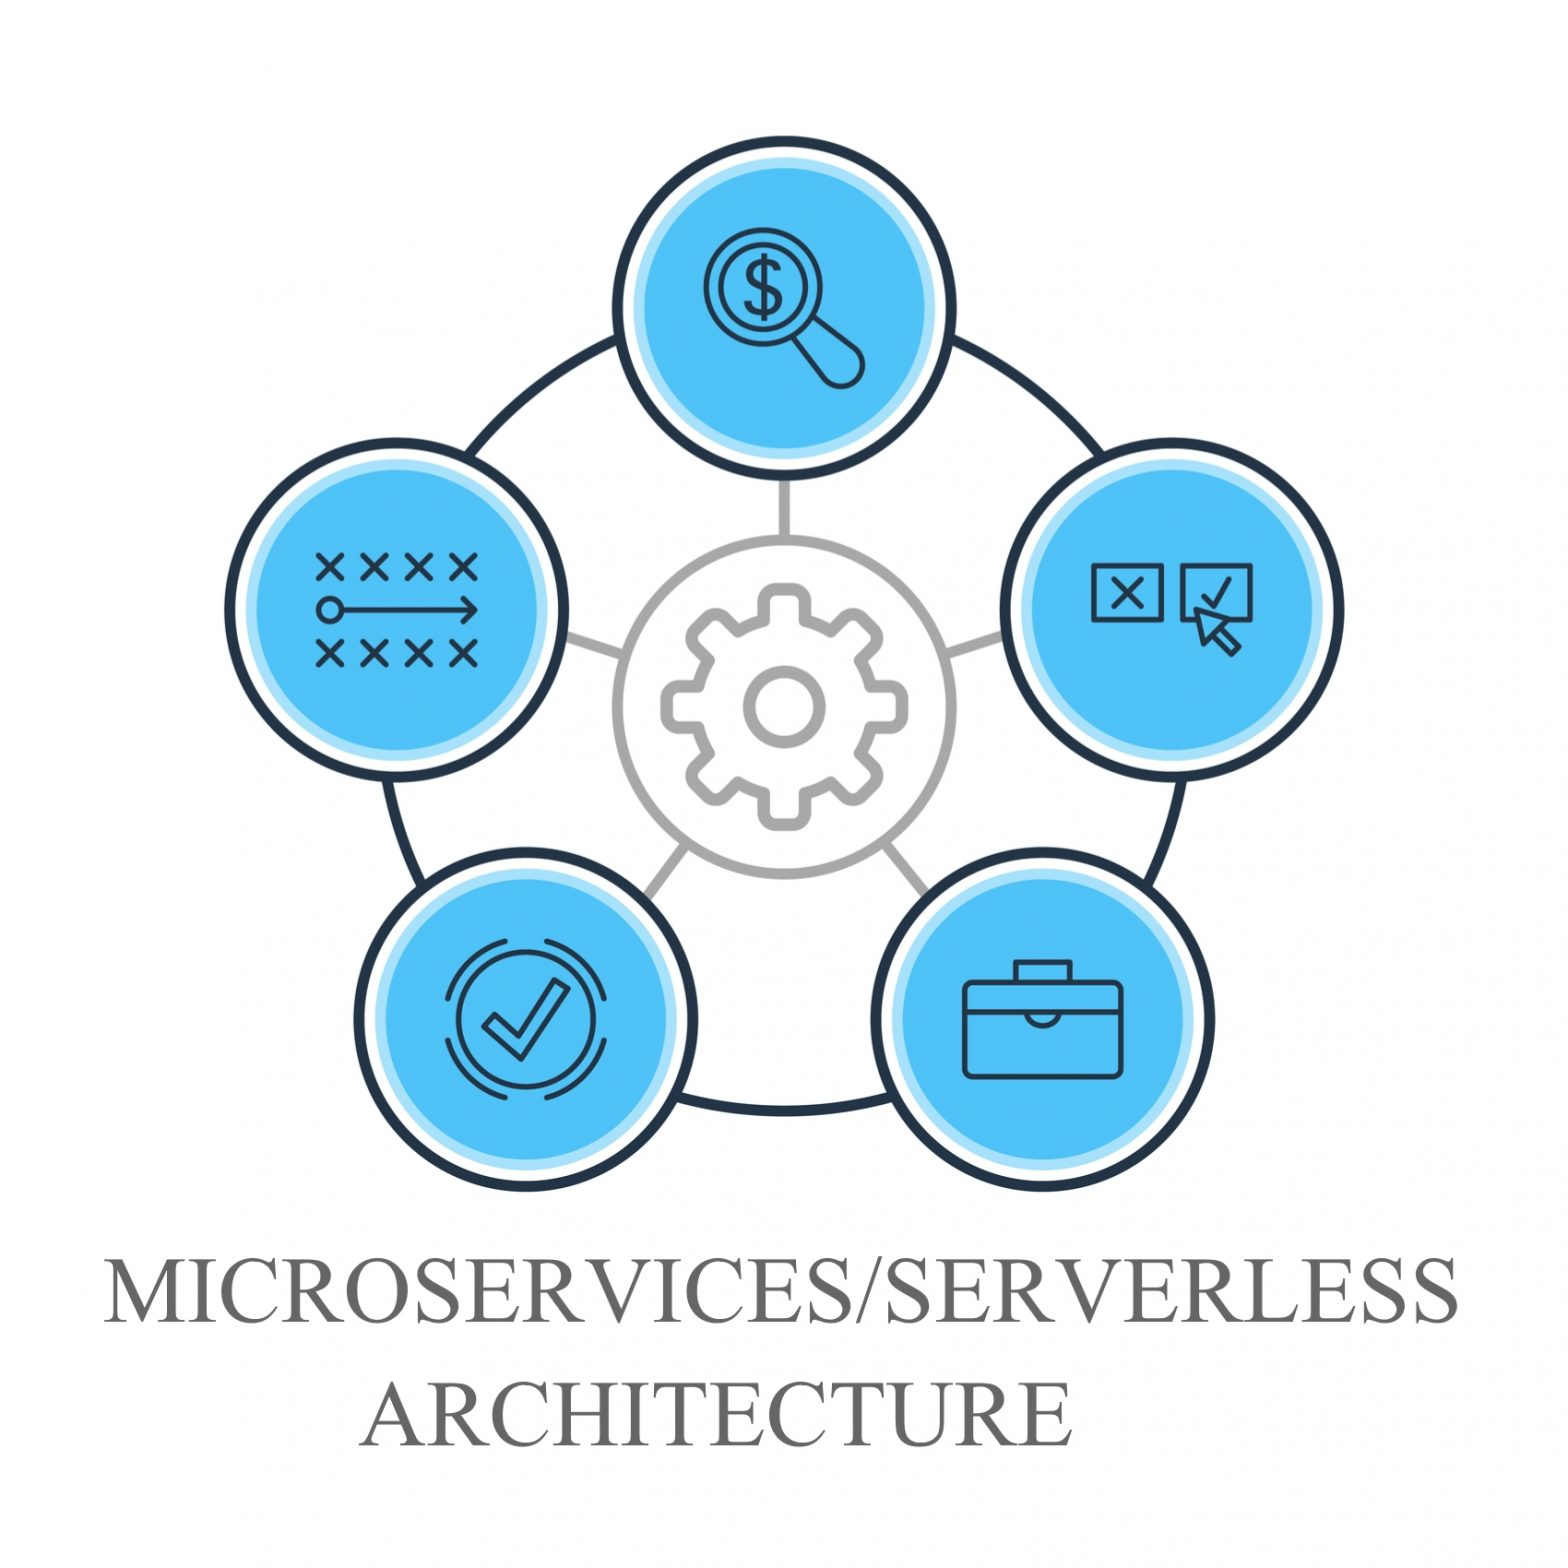 Microservices/ServerLess Architecture – Cloud 9 Infosystems